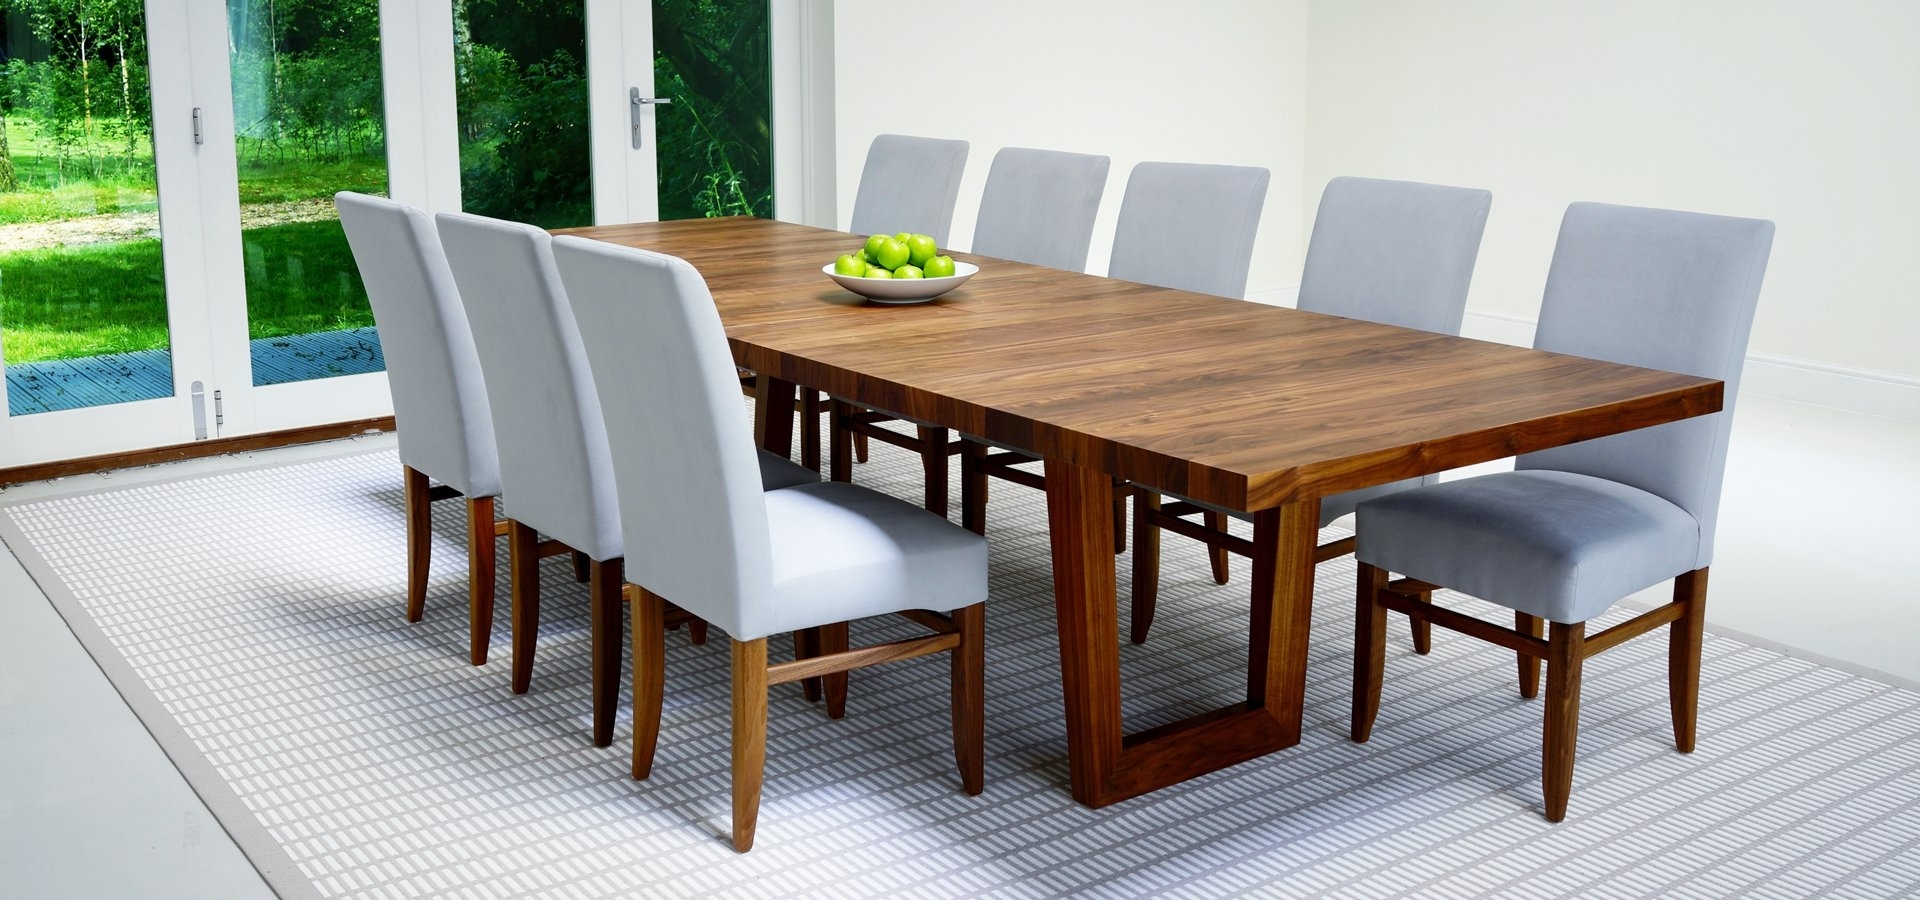 Favorite Extendable Dining Tables With 6 Chairs Inside Contemporary Dining Tables & Furnitureberrydesign (View 14 of 25)